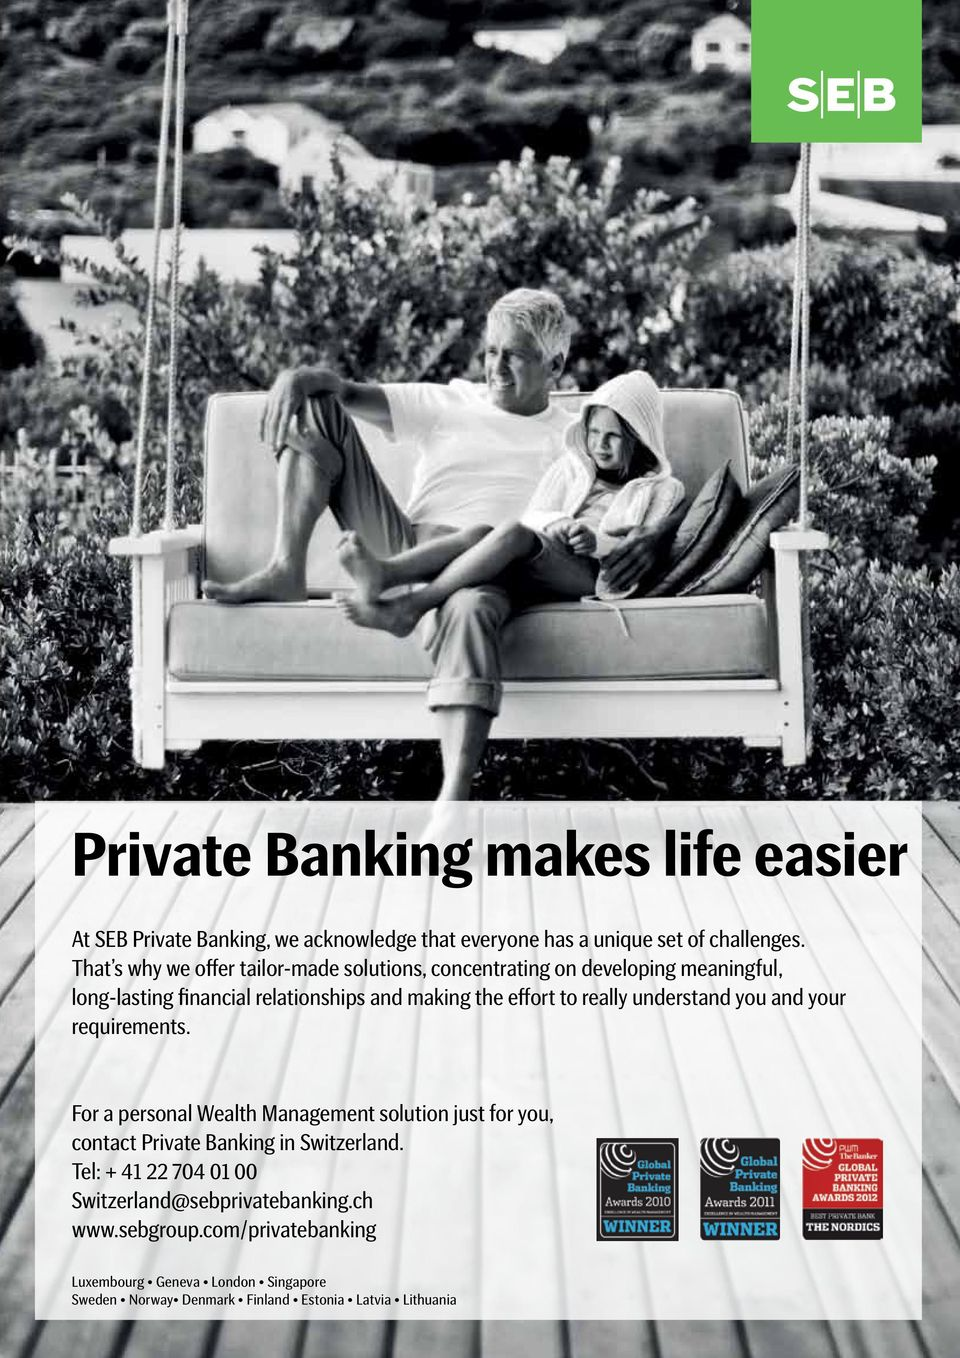 really understand you and your requirements. For a personal Wealth Management solution just for you, contact Private Banking in Switzerland.